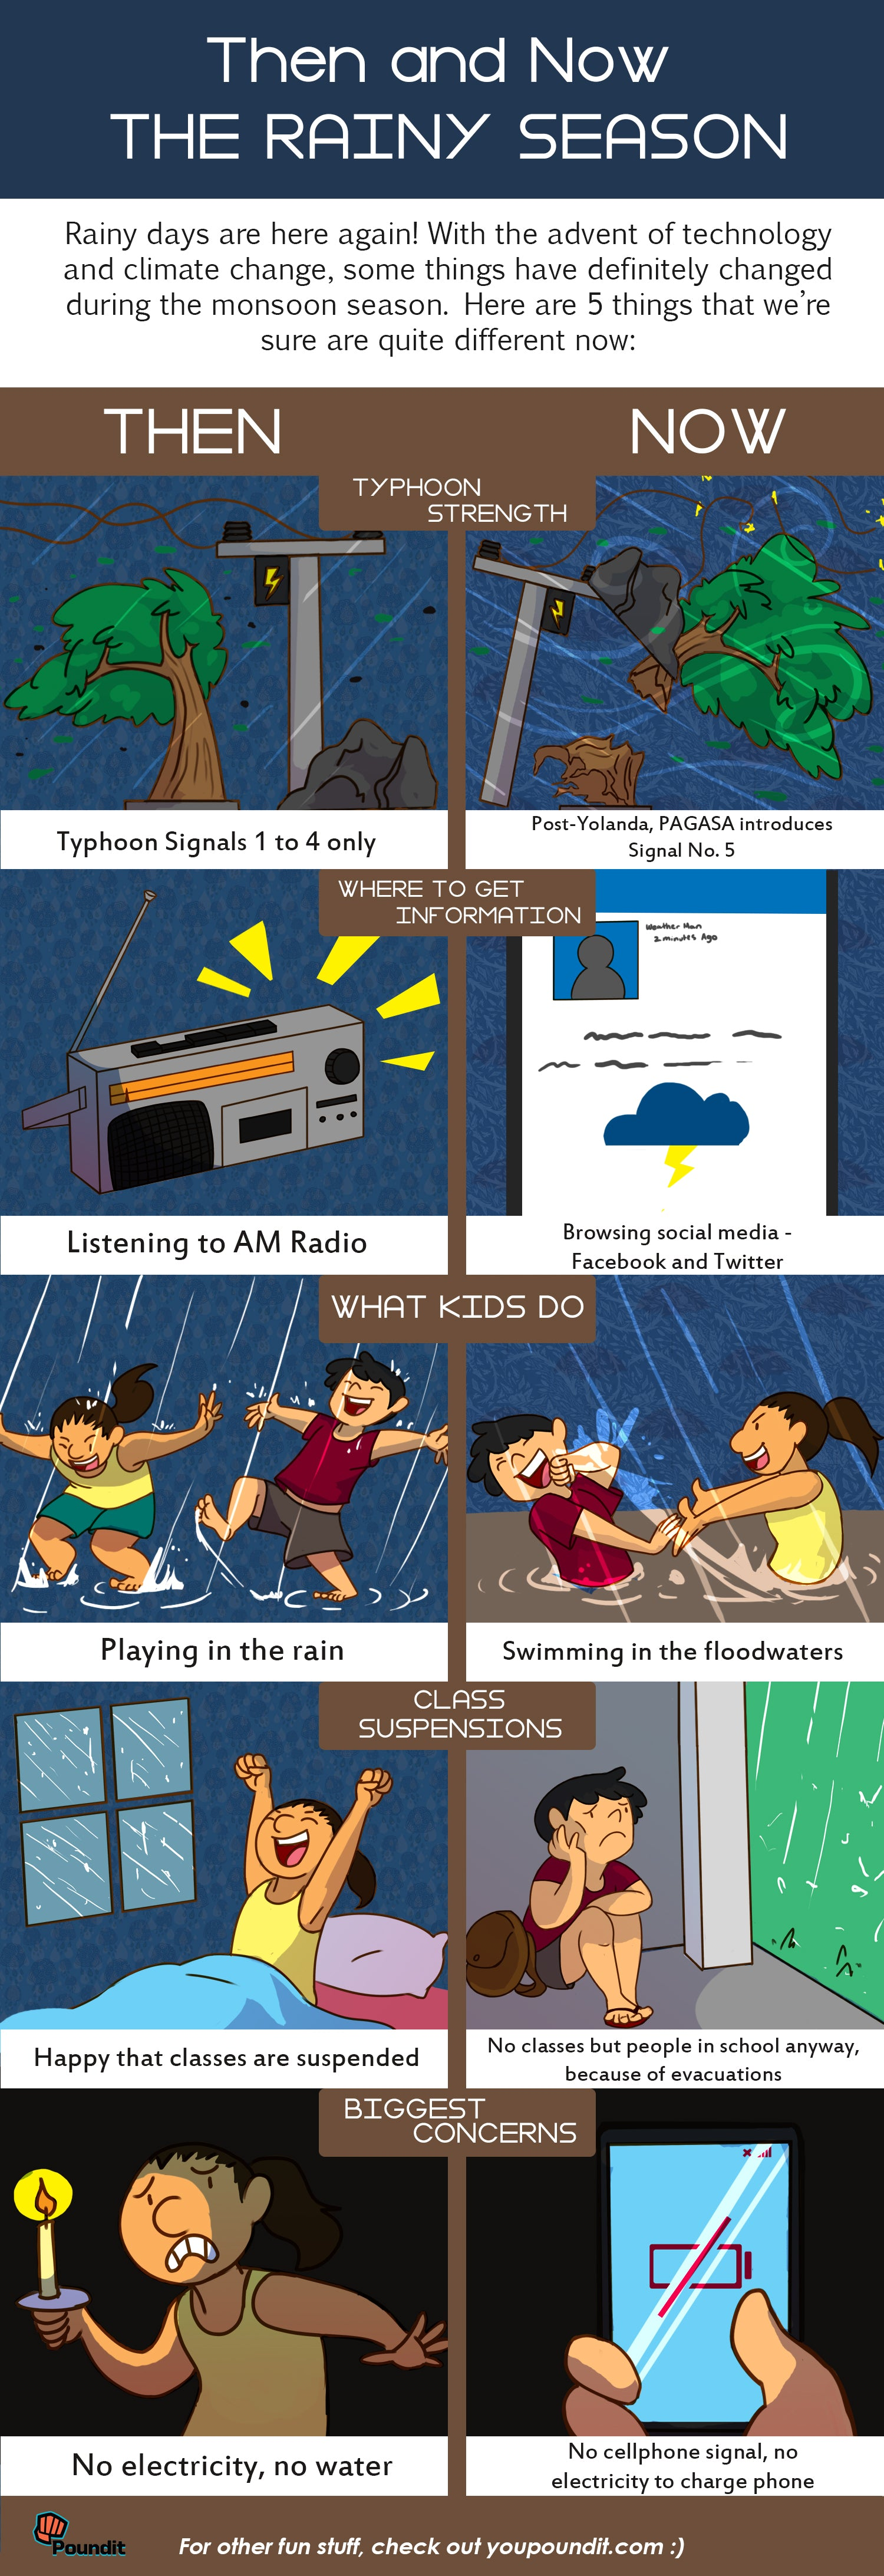 Then and Now: The Rainy Season